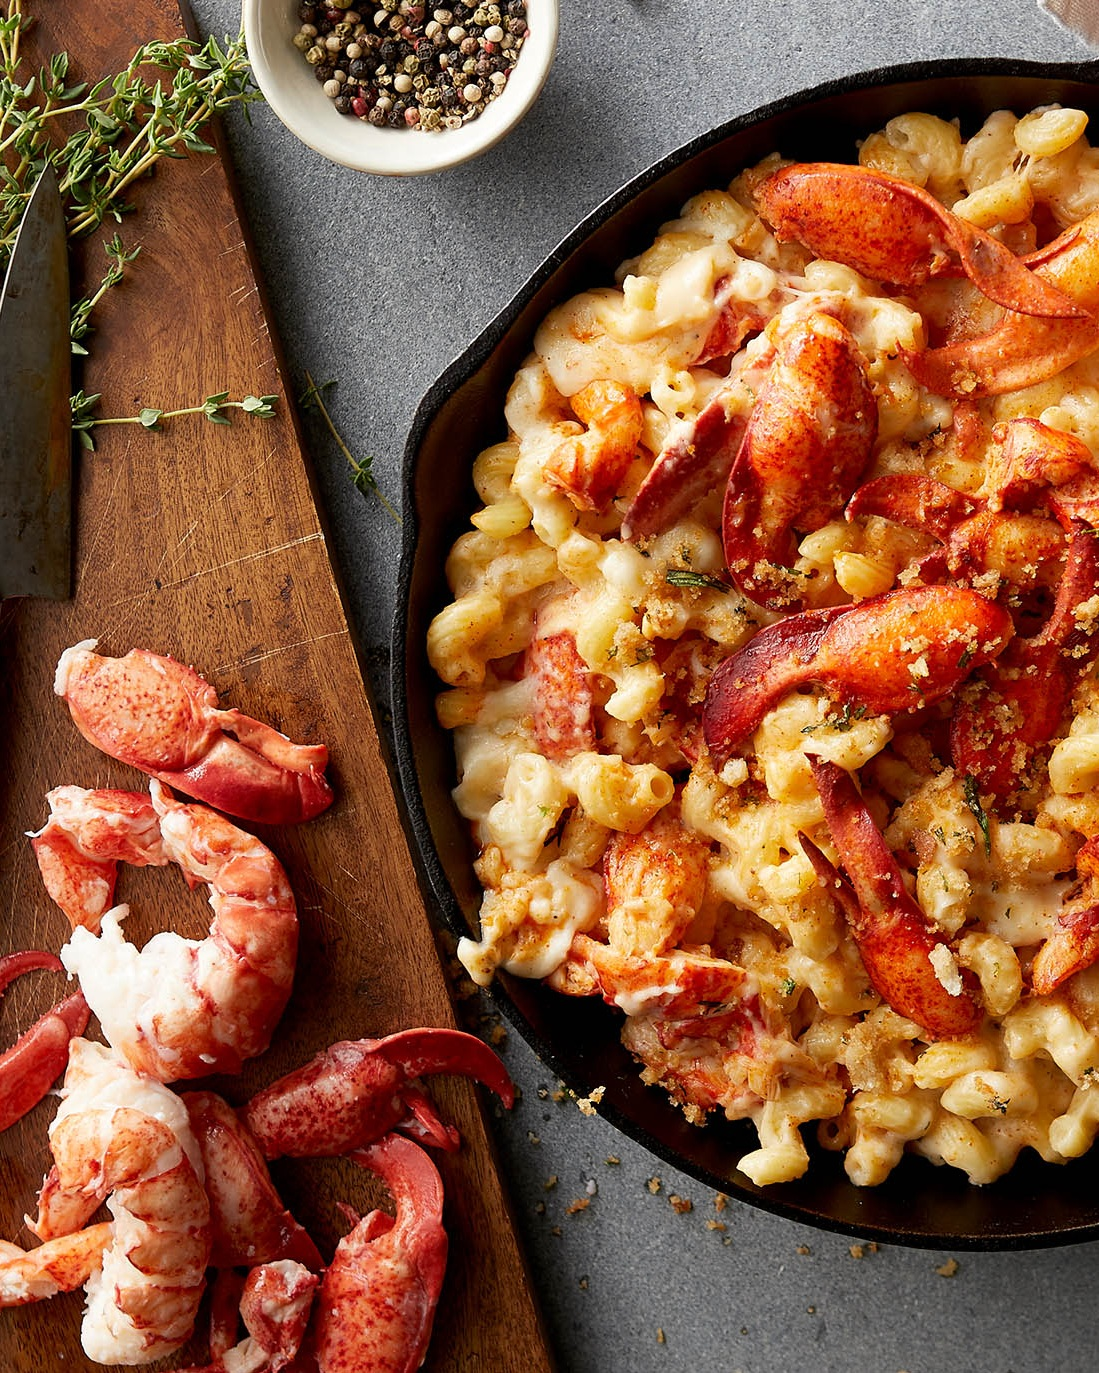 Frozen, wild-caught Atlantic lobster meat shipped nationwide, by Ready Seafood, Portland, Maine, perfect for lobster Mac & Cheese and other hearty dishes.